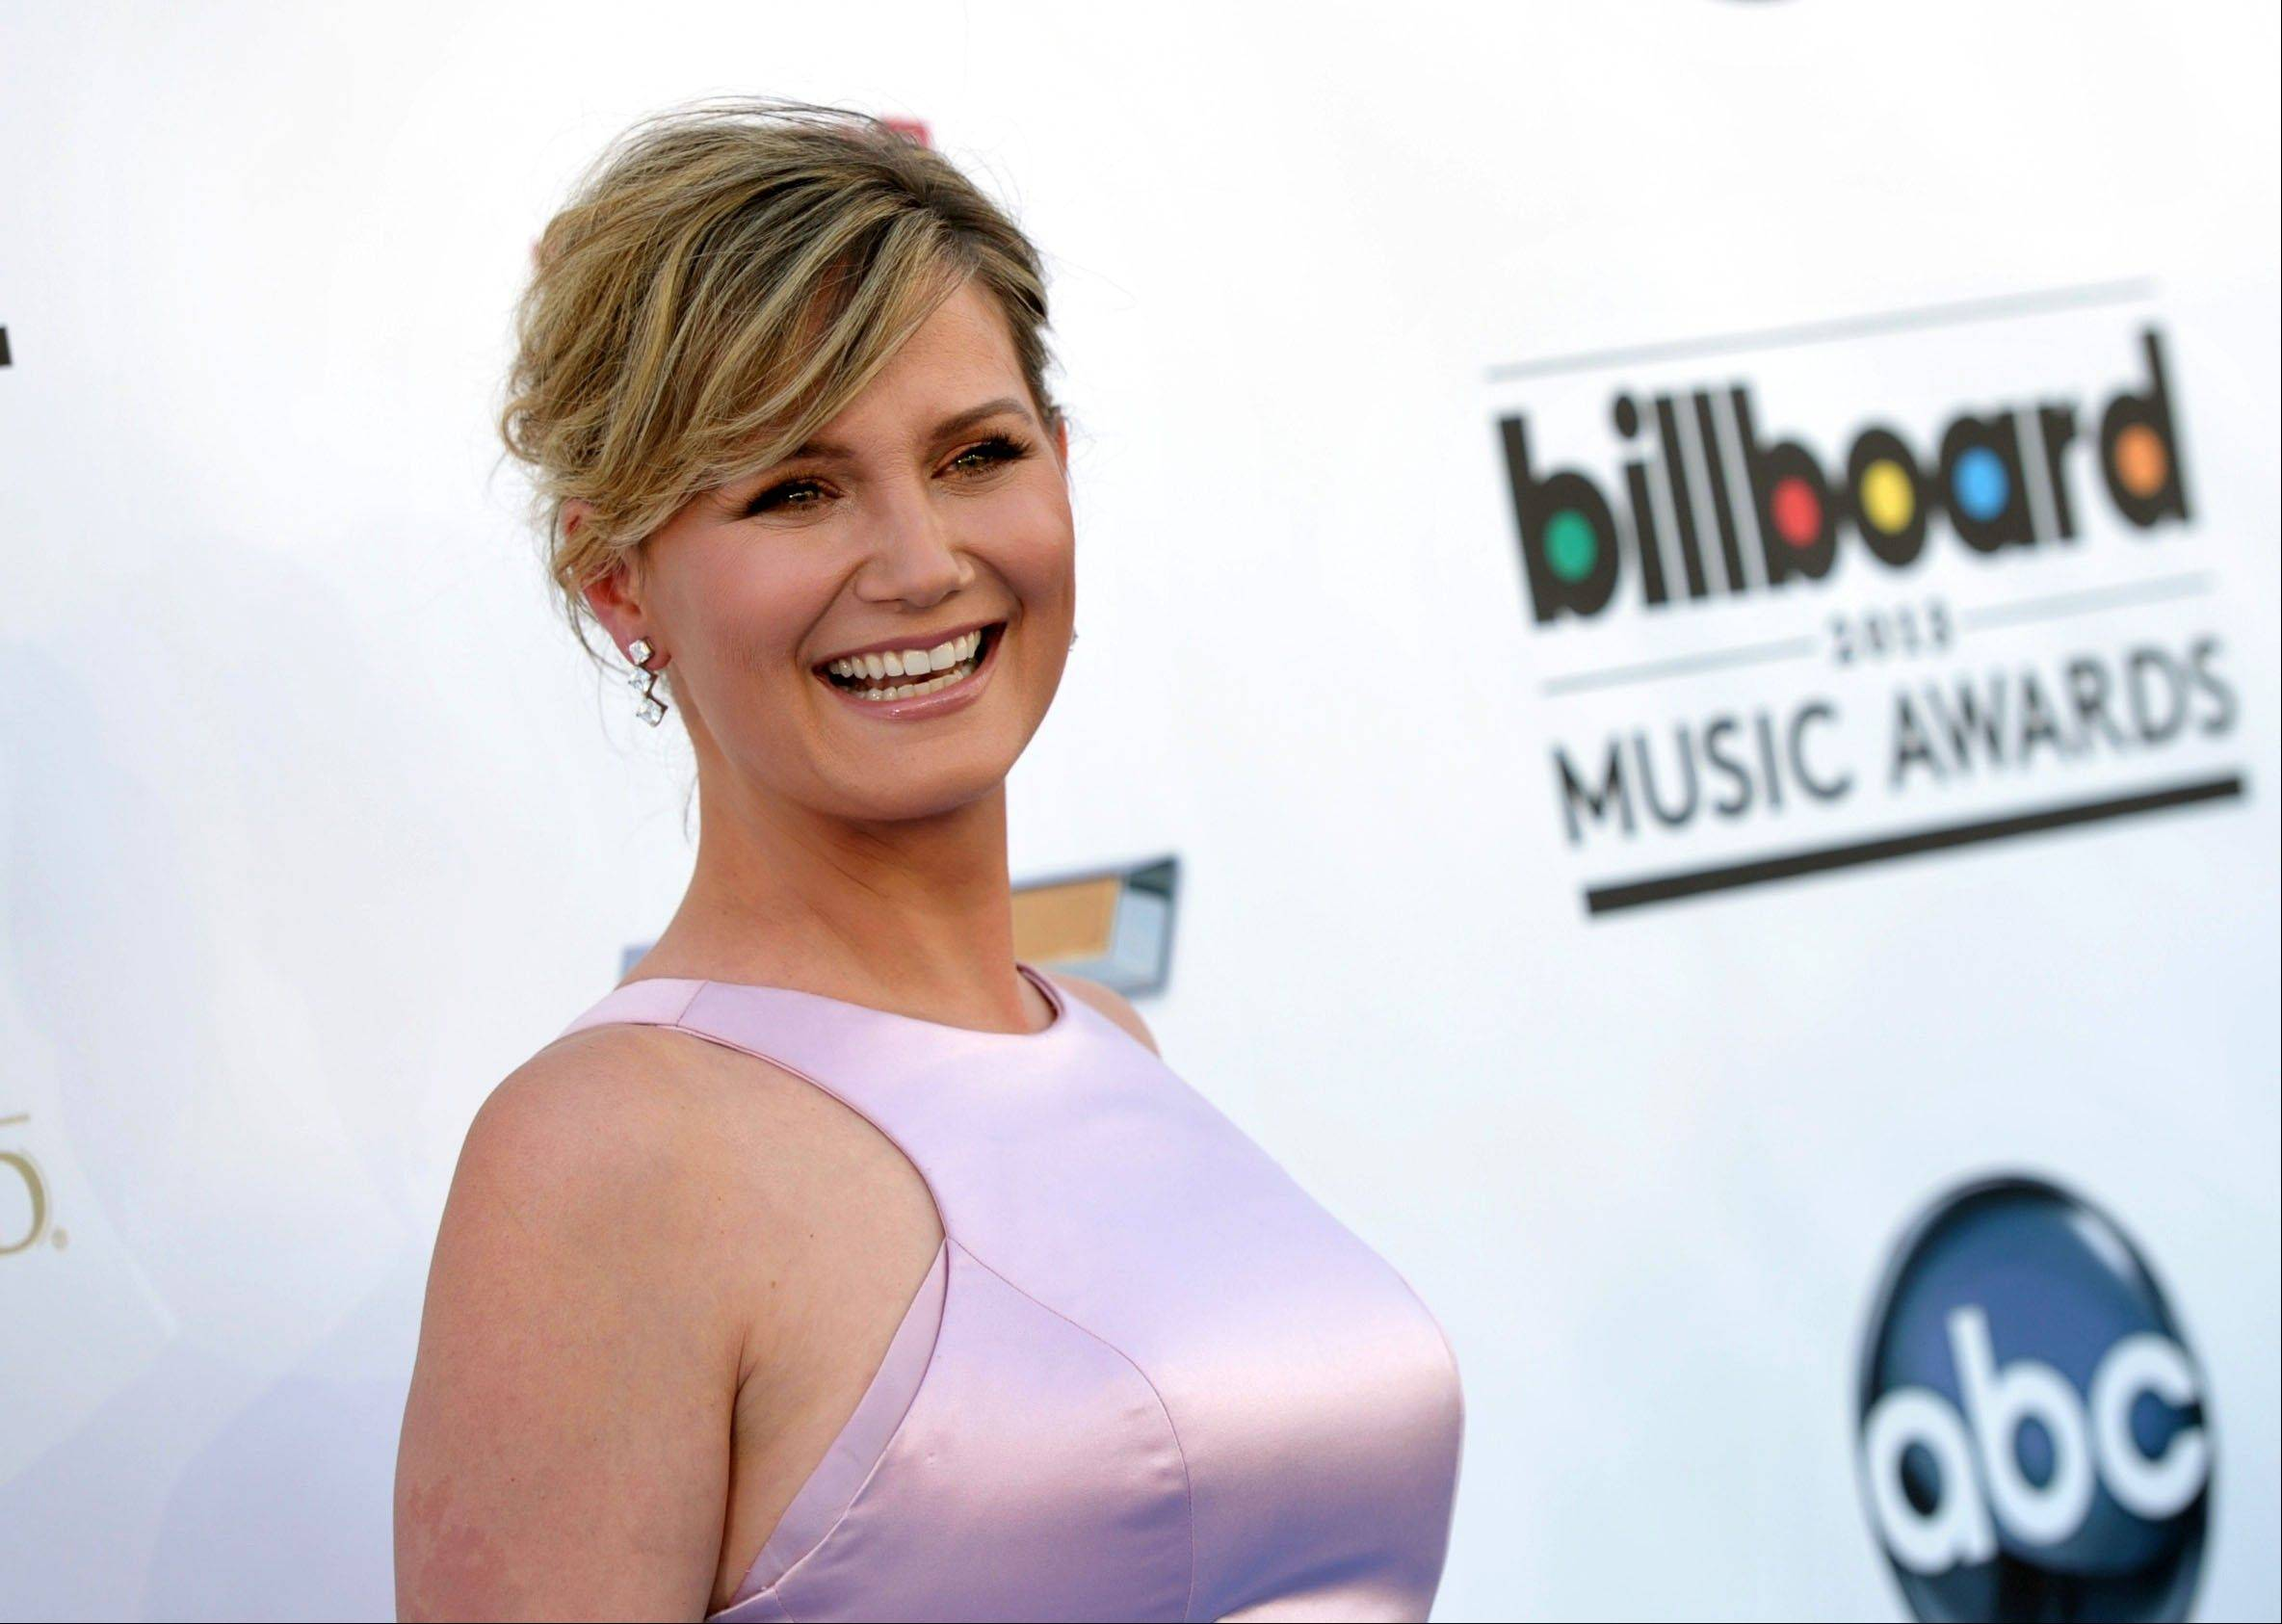 Jennifer Nettles announced Monday that she�ll be releasing her Rick Rubin-produced debut solo album, �That Girl,� on Jan. 14.